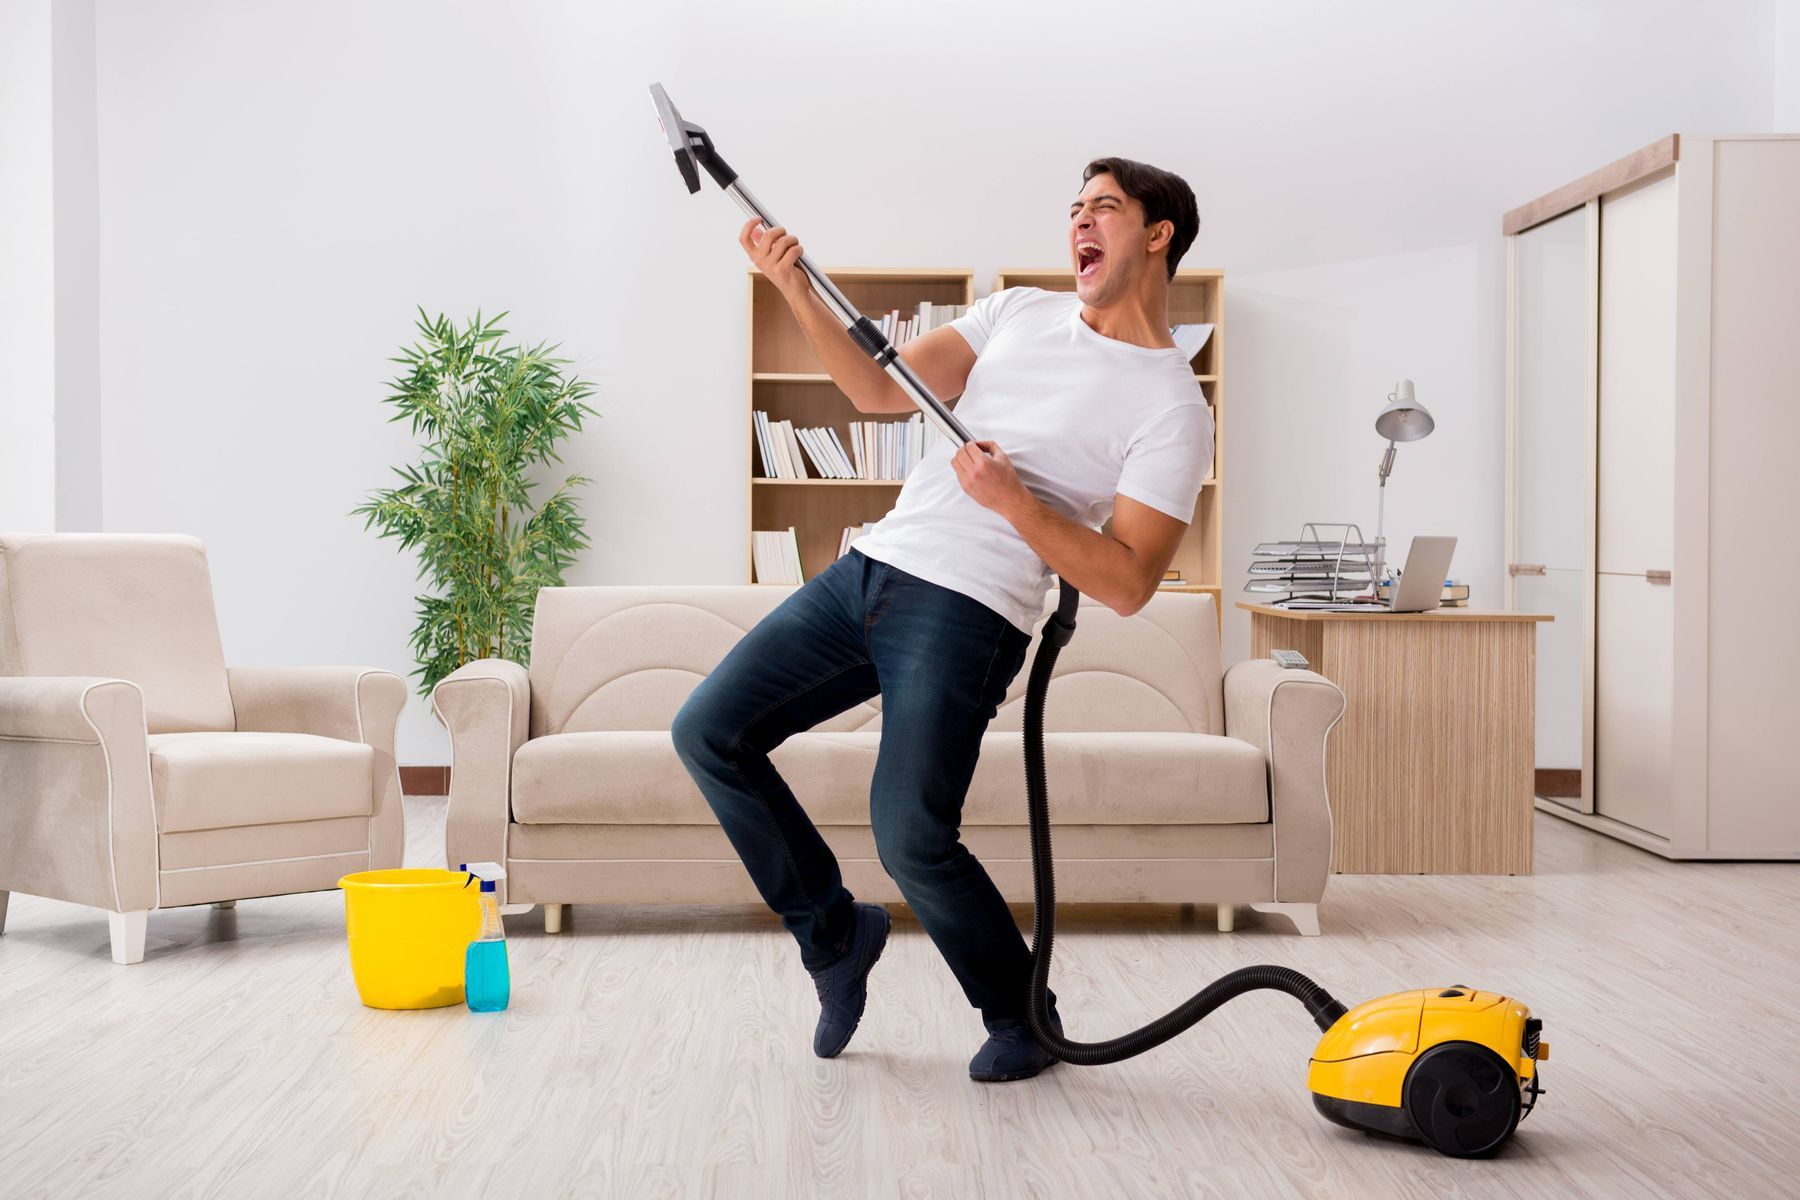 How to deep clean your house: General cleaning and moving out cleaning advice